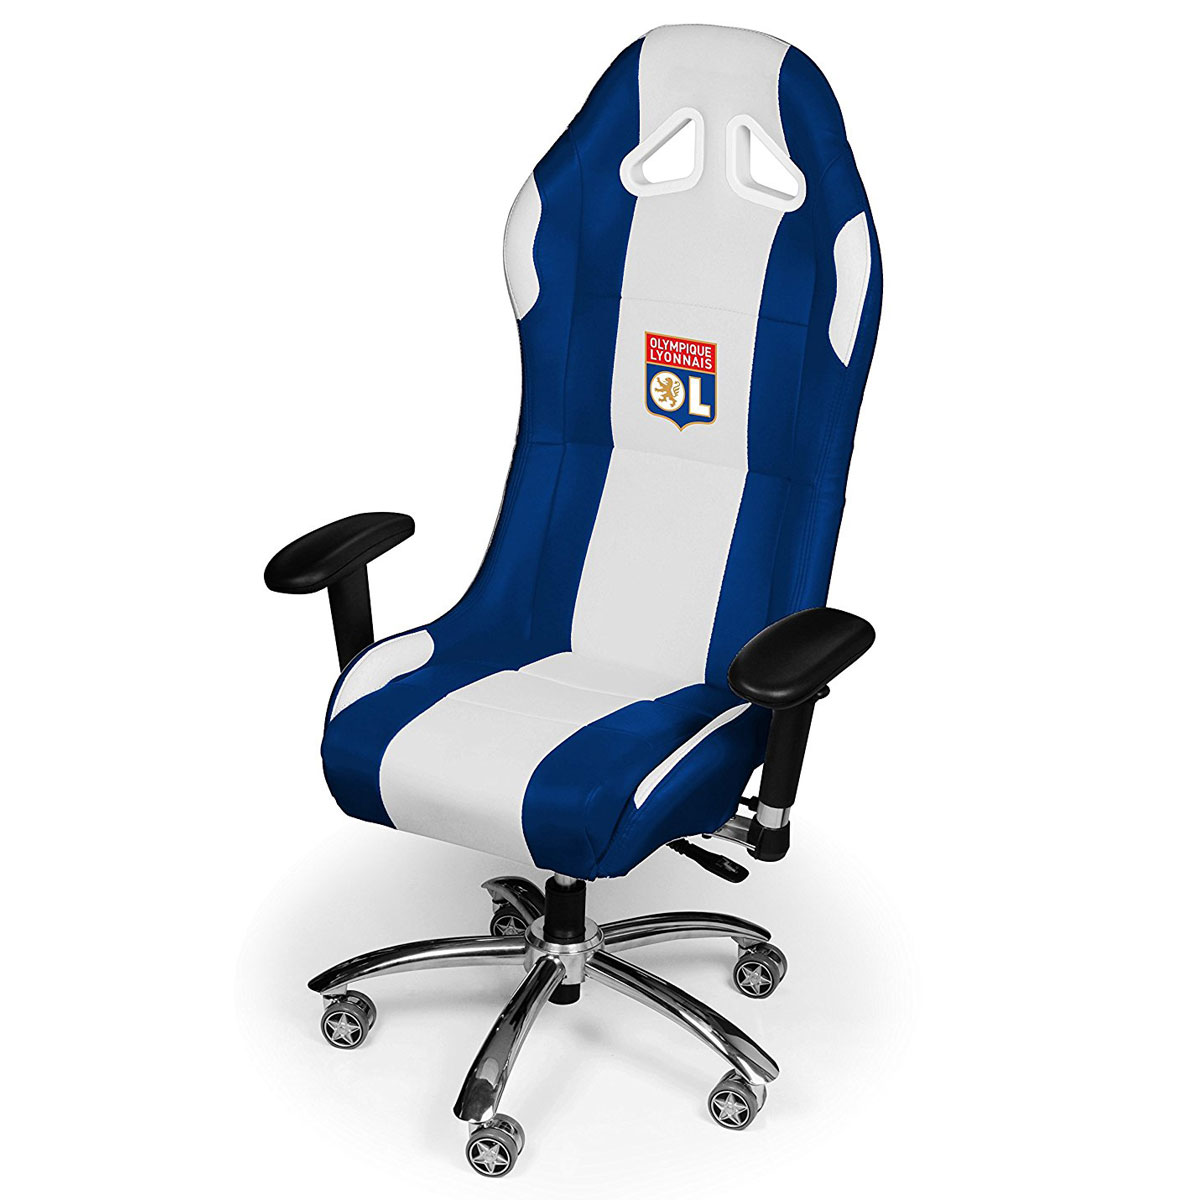 subsonic football gaming chair ol fauteuil gamer subsonic sur. Black Bedroom Furniture Sets. Home Design Ideas